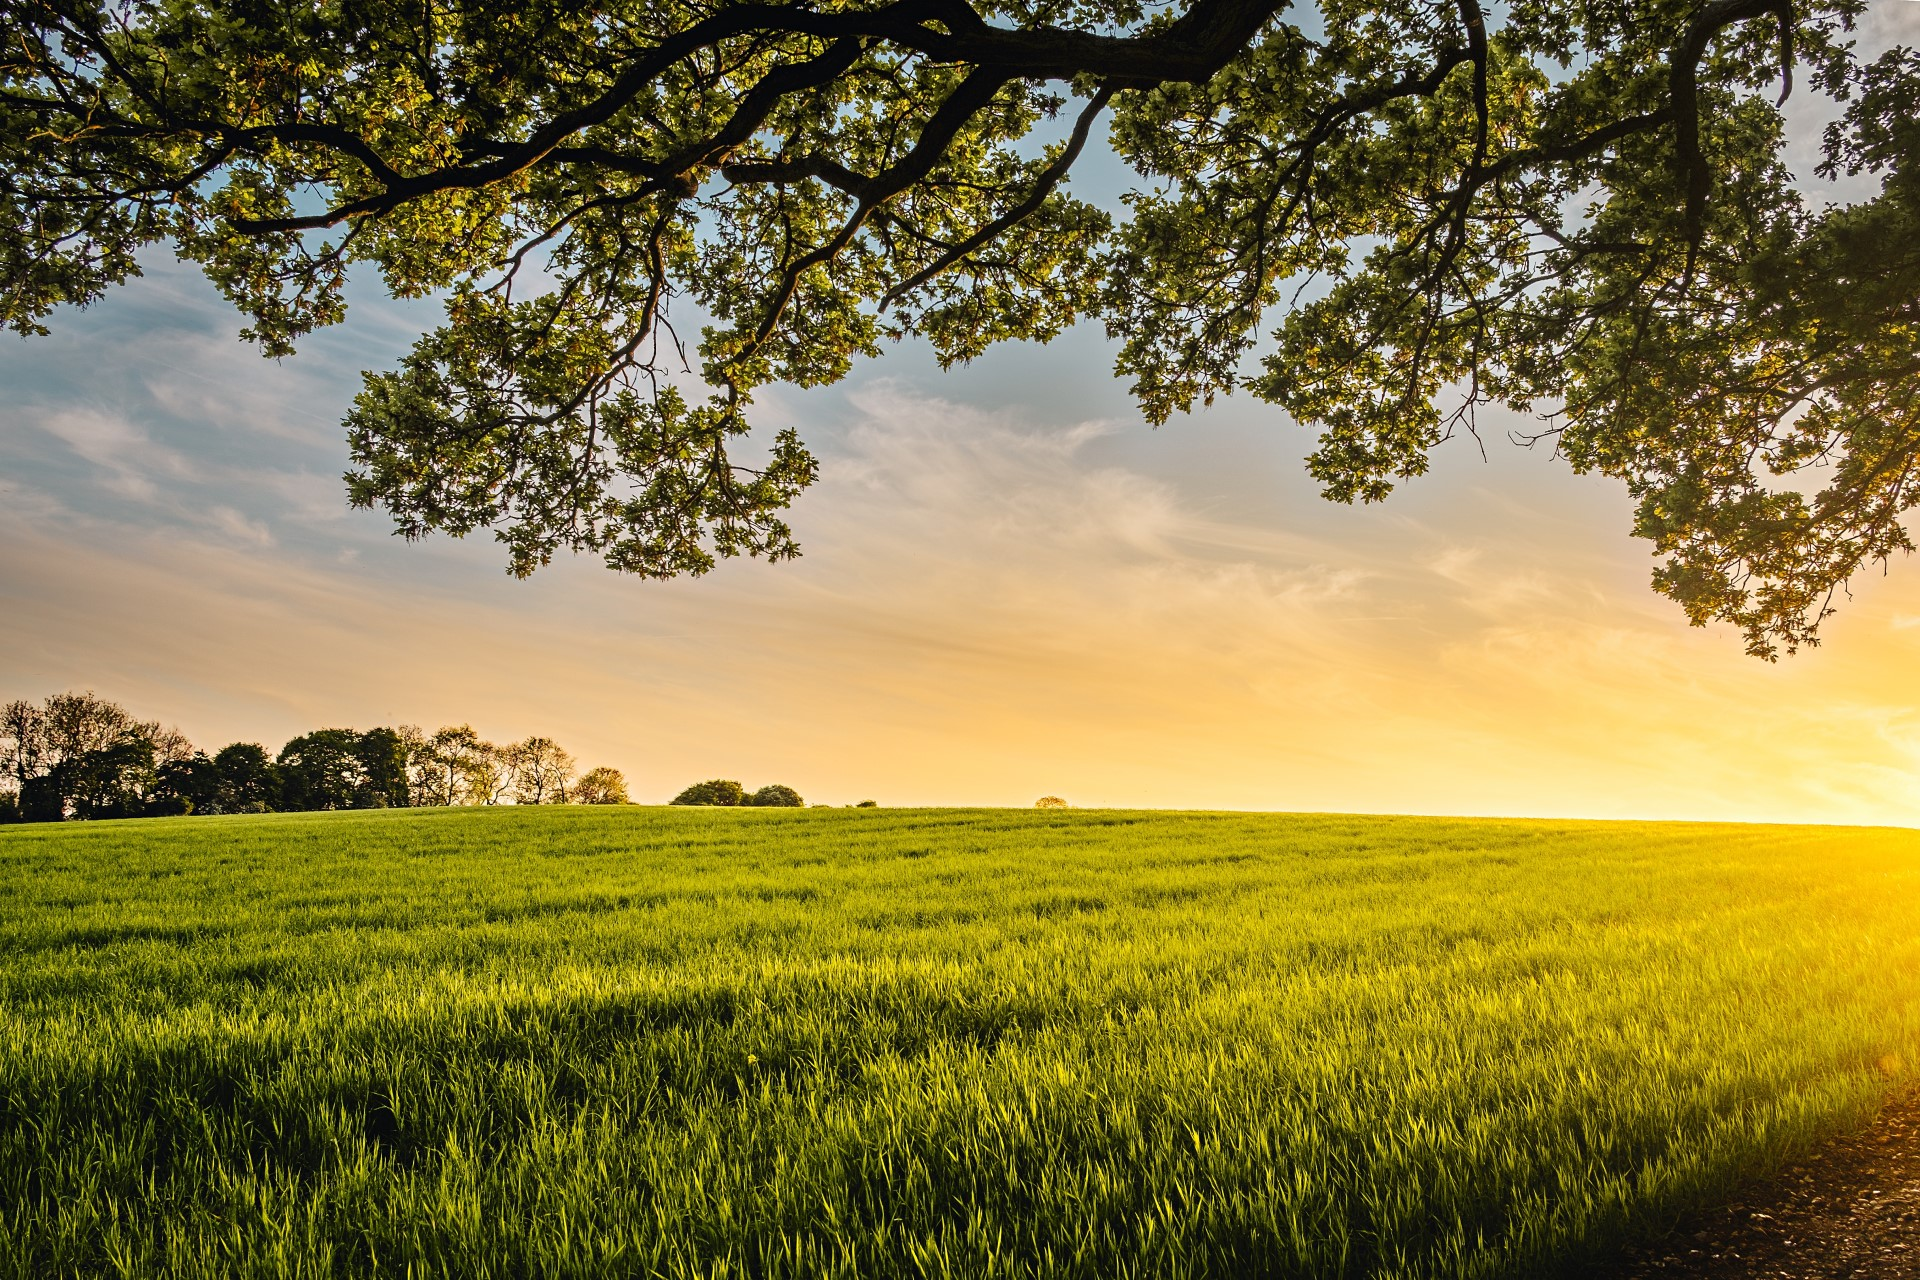 SPOTLIGHT on the Healing Powers of Regenerative Agriculture